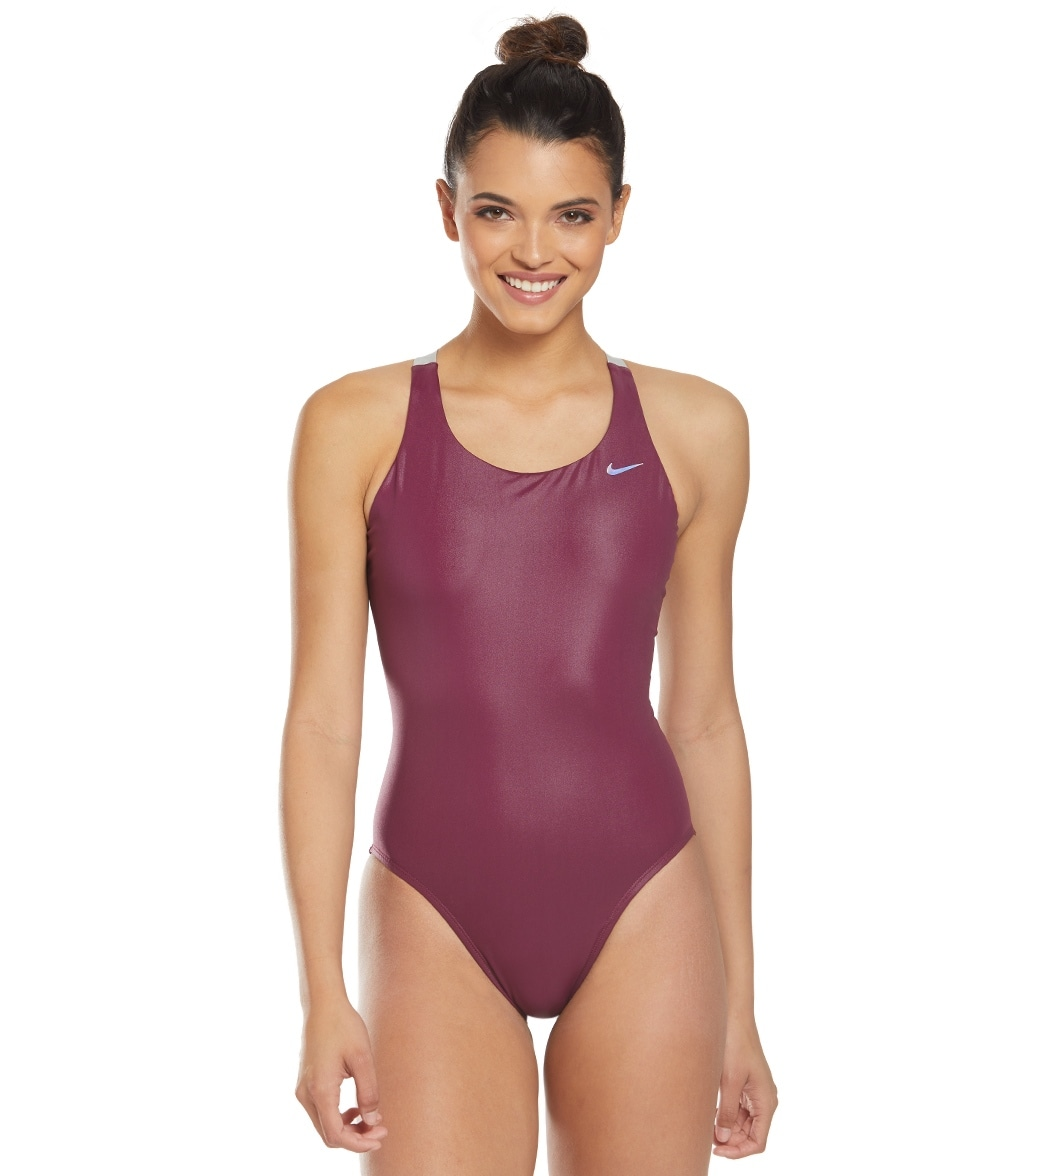 e13cbcdc02c8 Nike Women's Flash Bonded Fast Back One Piece Swimsuit at SwimOutlet.com -  Free Shipping